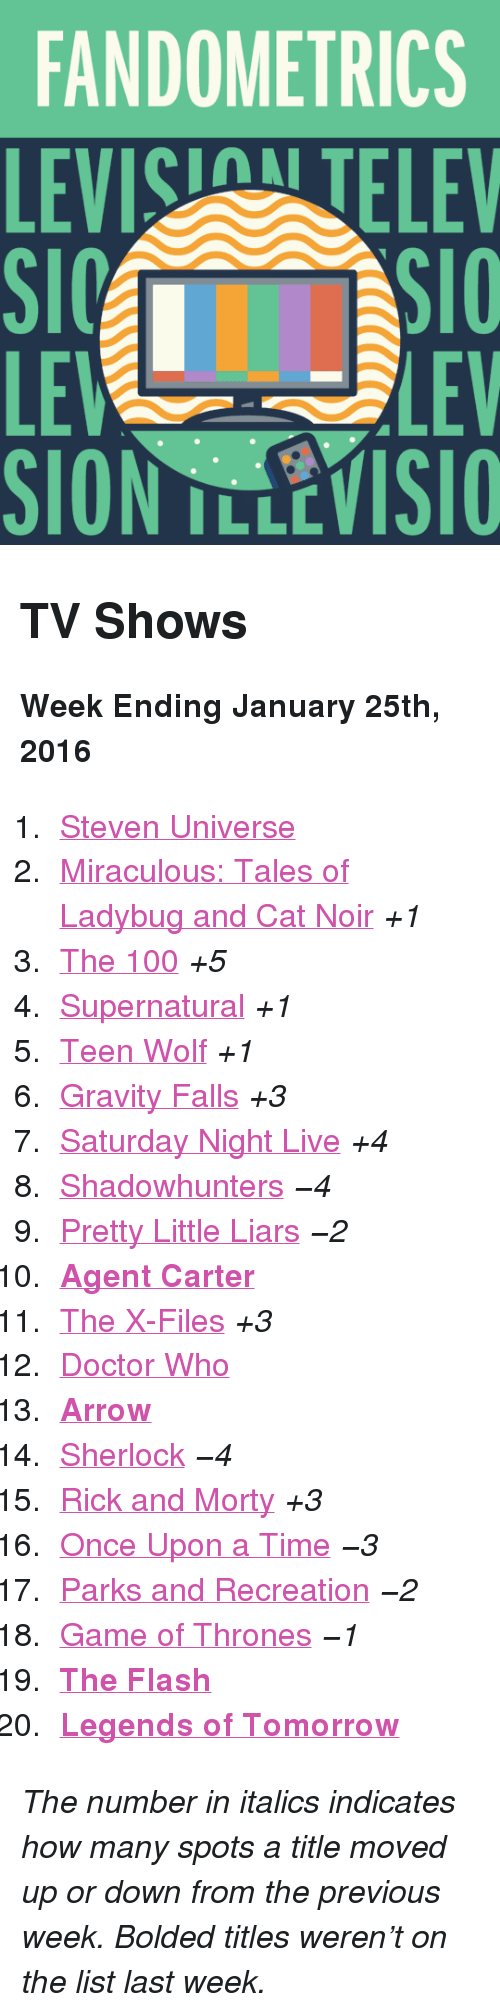 """Parks and Recreation: FANDOMETRICS  LEVIS TELEV  LE  SION TLLEVISIO  LEV <h2>TV Shows</h2><p><b>Week Ending January 25th, 2016</b></p><ol><li><a href=""""http://www.tumblr.com/search/steven%20universe"""">Steven Universe</a></li>  <li><a href=""""http://www.tumblr.com/search/miraculous%20ladybug"""">Miraculous: Tales of Ladybug and Cat Noir</a><i>+1</i></li>  <li><a href=""""http://www.tumblr.com/search/the%20100"""">The 100</a><i>+5</i></li>  <li><a href=""""http://www.tumblr.com/search/supernatural"""">Supernatural</a><i>+1</i></li>  <li><a href=""""http://www.tumblr.com/search/teen%20wolf"""">Teen Wolf</a><i>+1</i></li>  <li><a href=""""http://www.tumblr.com/search/gravity%20falls"""">Gravity Falls</a><i>+3</i></li>  <li><a href=""""http://www.tumblr.com/search/snl"""">Saturday Night Live</a><i>+4</i></li>  <li><a href=""""http://www.tumblr.com/search/shadowhunters"""">Shadowhunters</a><i>−4</i></li>  <li><a href=""""http://www.tumblr.com/search/pretty%20little%20liars"""">Pretty Little Liars</a><i>−2</i></li>  <li><a href=""""http://www.tumblr.com/search/agent%20carter""""><b>Agent Carter</b></a></li>  <li><a href=""""http://www.tumblr.com/search/x%20files"""">The X-Files</a><i>+3</i></li>  <li><a href=""""http://www.tumblr.com/search/doctor%20who"""">Doctor Who</a></li>  <li><a href=""""http://www.tumblr.com/search/arrow""""><b>Arrow</b></a></li>  <li><a href=""""http://www.tumblr.com/search/sherlock"""">Sherlock</a><i>−4</i></li>  <li><a href=""""http://www.tumblr.com/search/rick%20and%20morty"""">Rick and Morty</a><i>+3</i></li>  <li><a href=""""http://www.tumblr.com/search/ouat"""">Once Upon a Time</a><i>−3</i></li>  <li><a href=""""http://www.tumblr.com/search/parks%20and%20recreation"""">Parks and Recreation</a><i>−2</i></li>  <li><a href=""""http://www.tumblr.com/search/game%20of%20thrones"""">Game of Thrones</a><i>−1</i></li>  <li><a href=""""http://www.tumblr.com/search/the%20flash""""><b>The Flash</b></a></li>  <li><a href=""""http://www.tumblr.com/search/legends%20of%20tomorrow""""><b>Legends of Tomorrow</b></a></li></ol><p><i>The number in italics indicates how many s"""